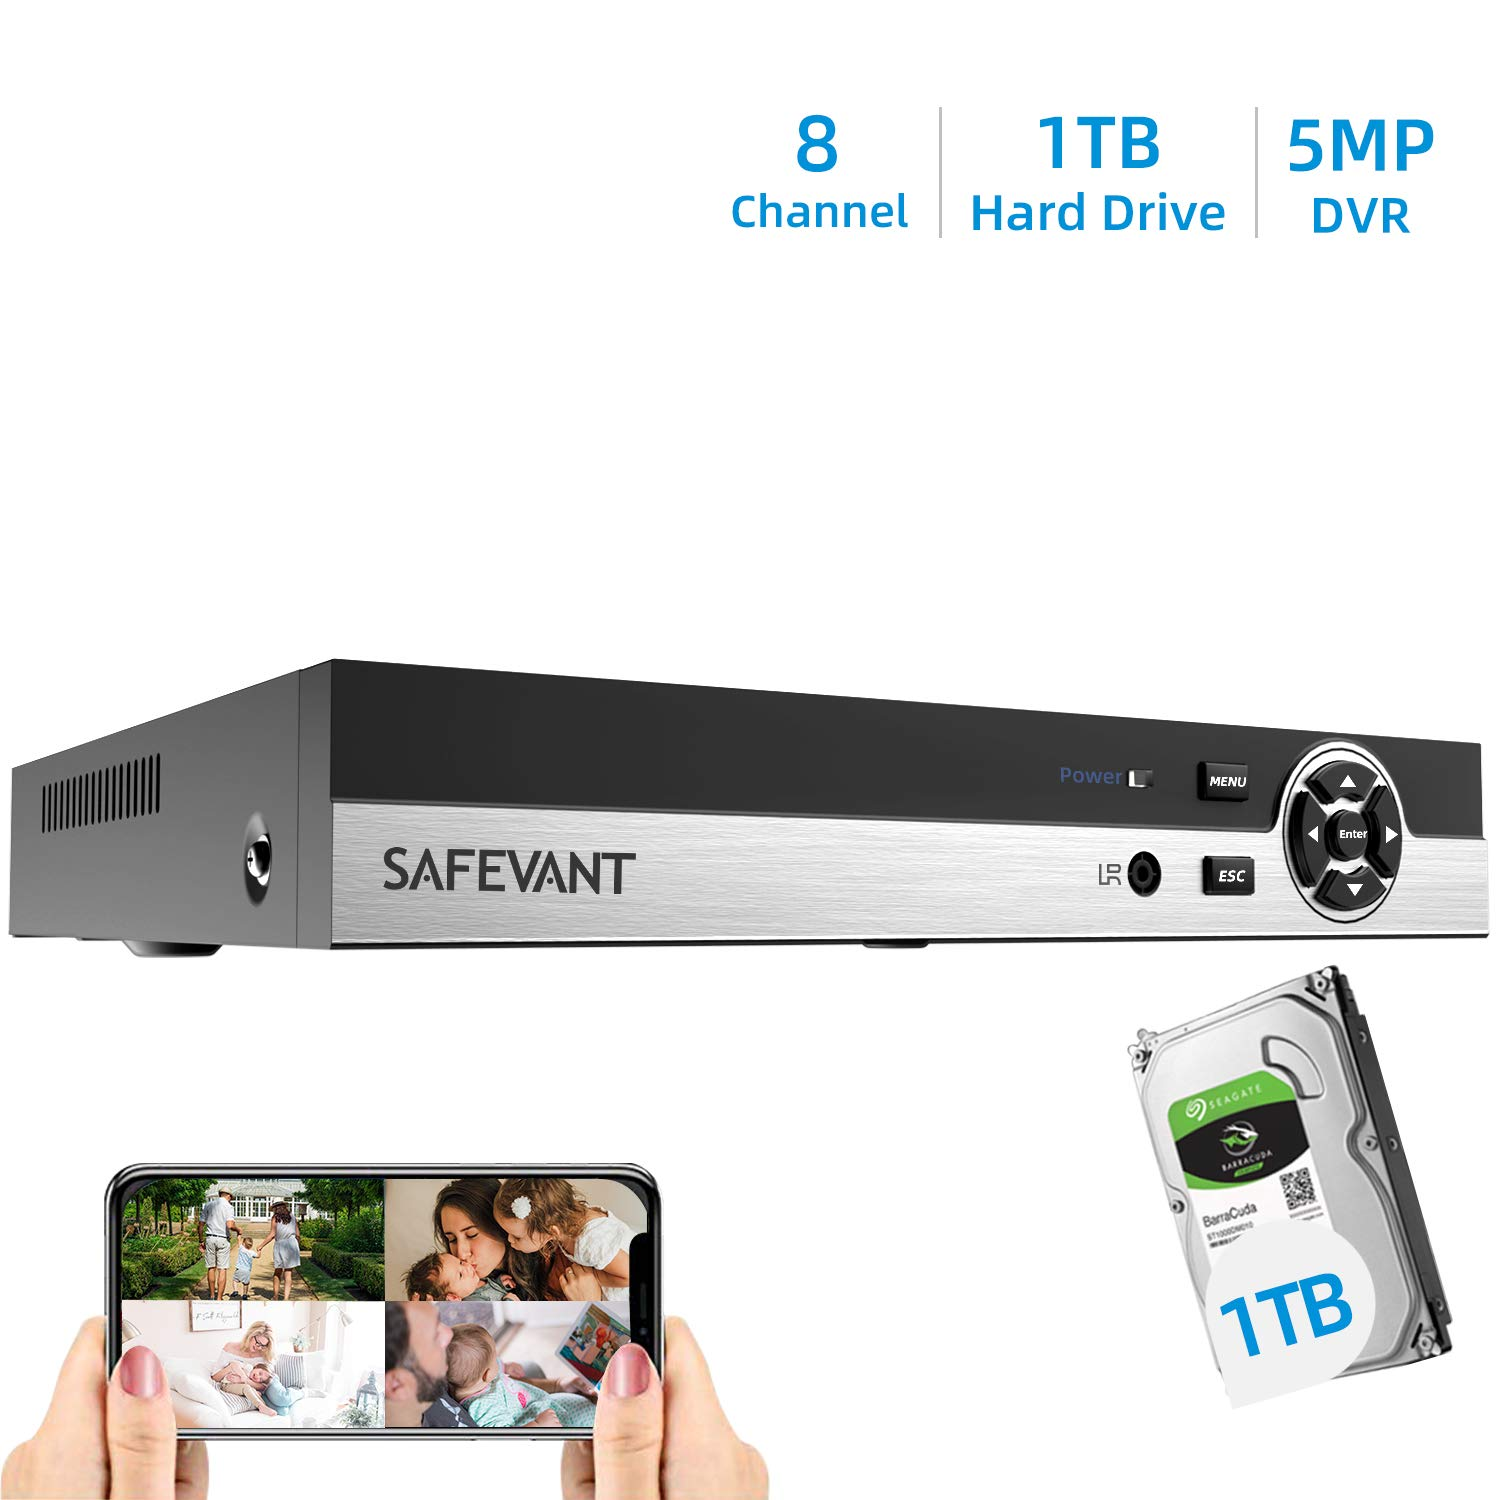 Newest 1080P Security Camera System,SMONET 8 Channel 5-in-1 HD DVR Outdoor Camera System 1TB Hard Drive ,8pcs 2MP Weatherproof Security Cameras,Super Night Vision,Free APP,Easy Remote View,P2P